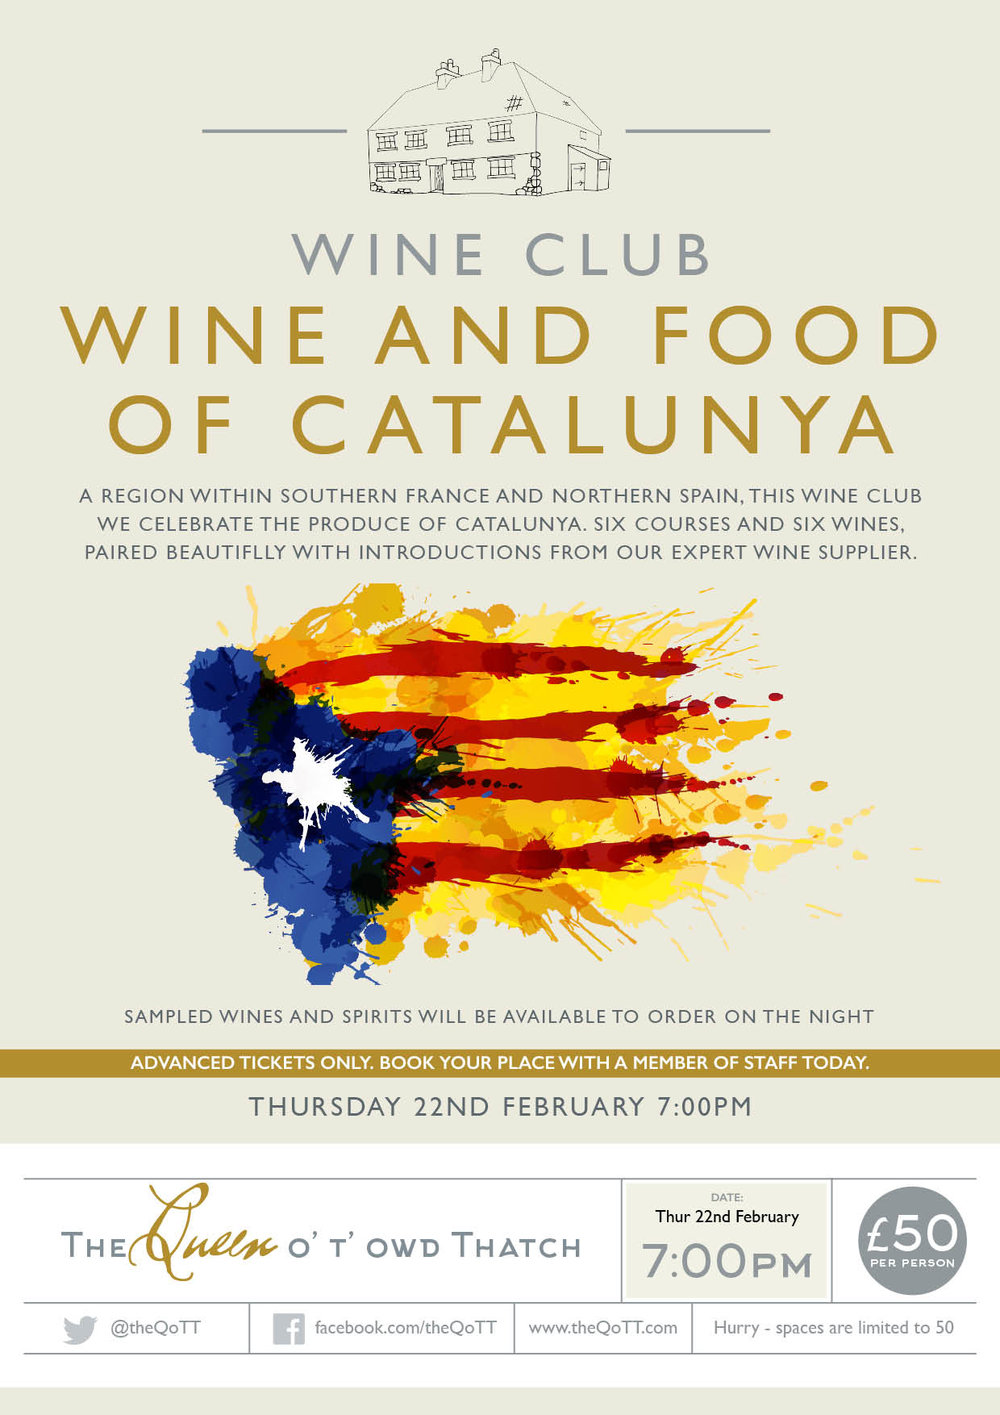 22nd_feb_wine_club_catalunya.jpg